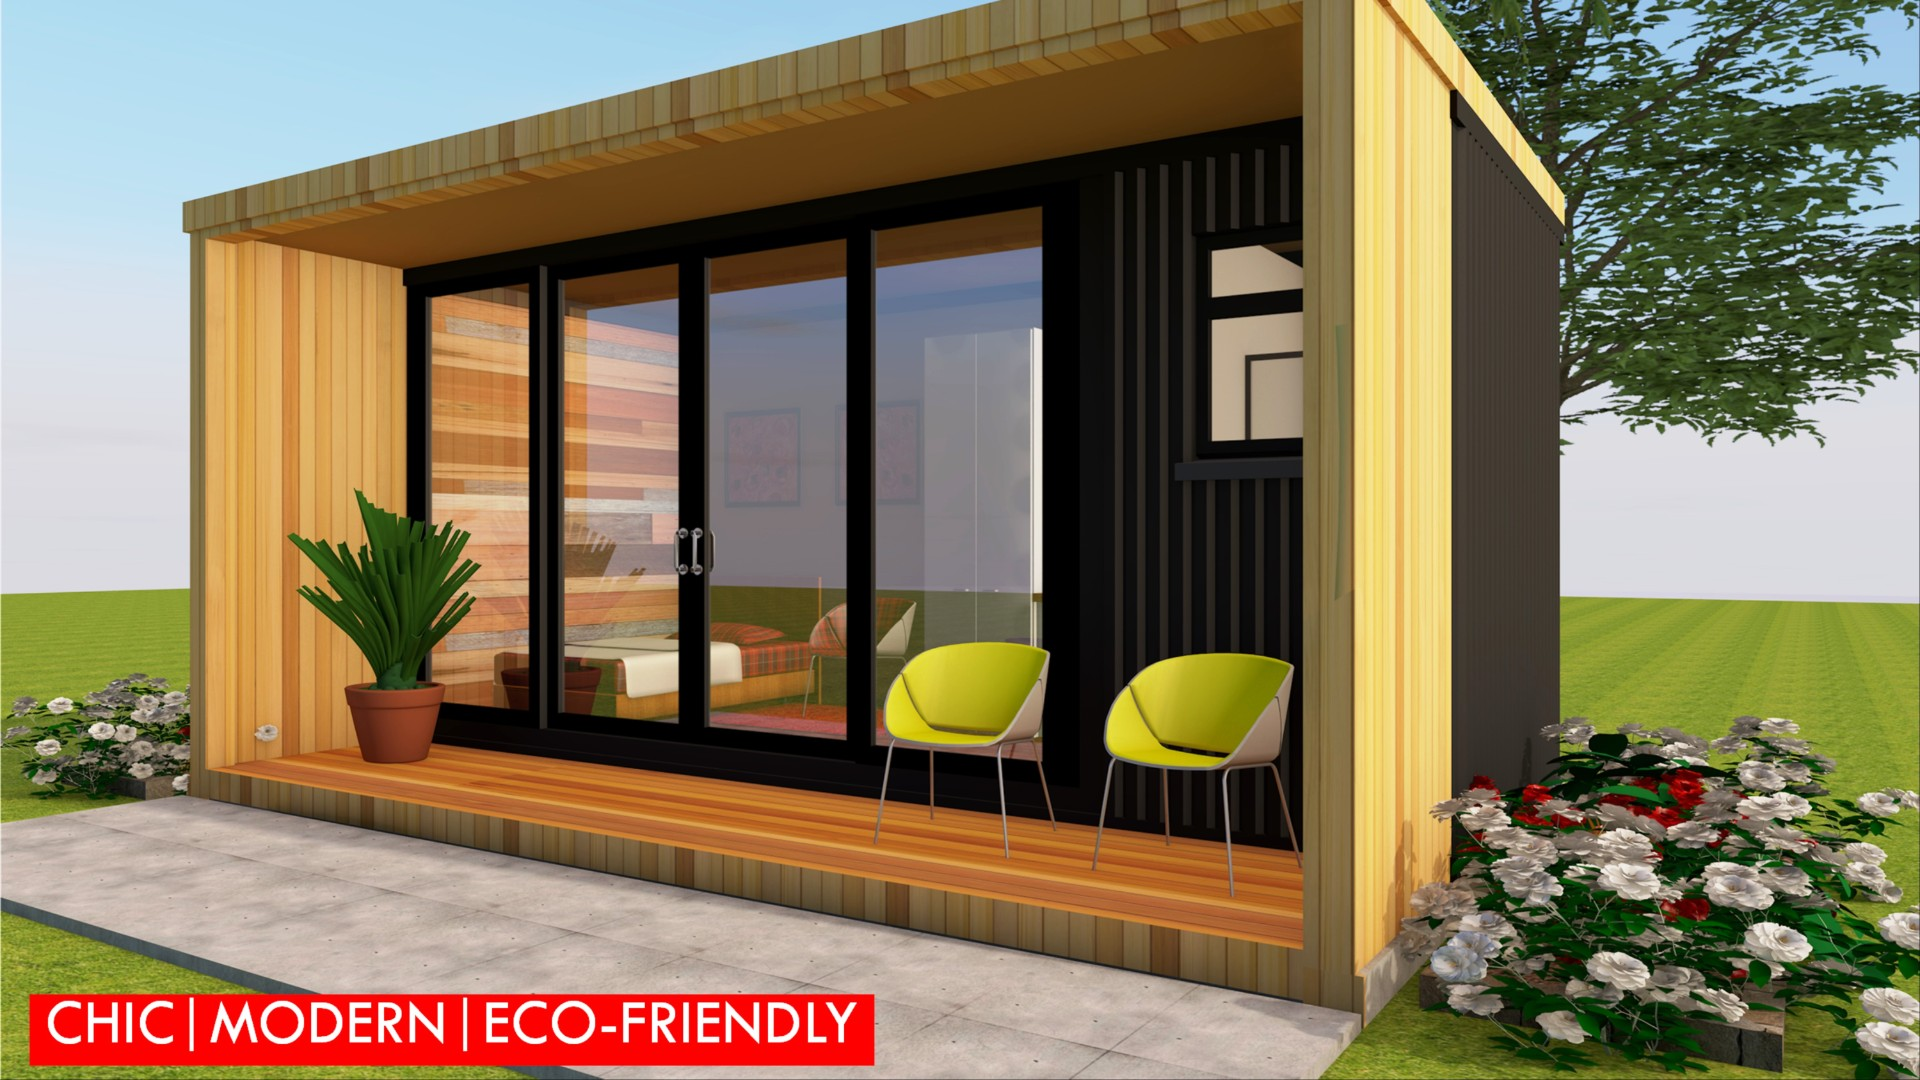 ways-to-save-money-when-building-a-shipping-container-house-20-foot-container-cabin